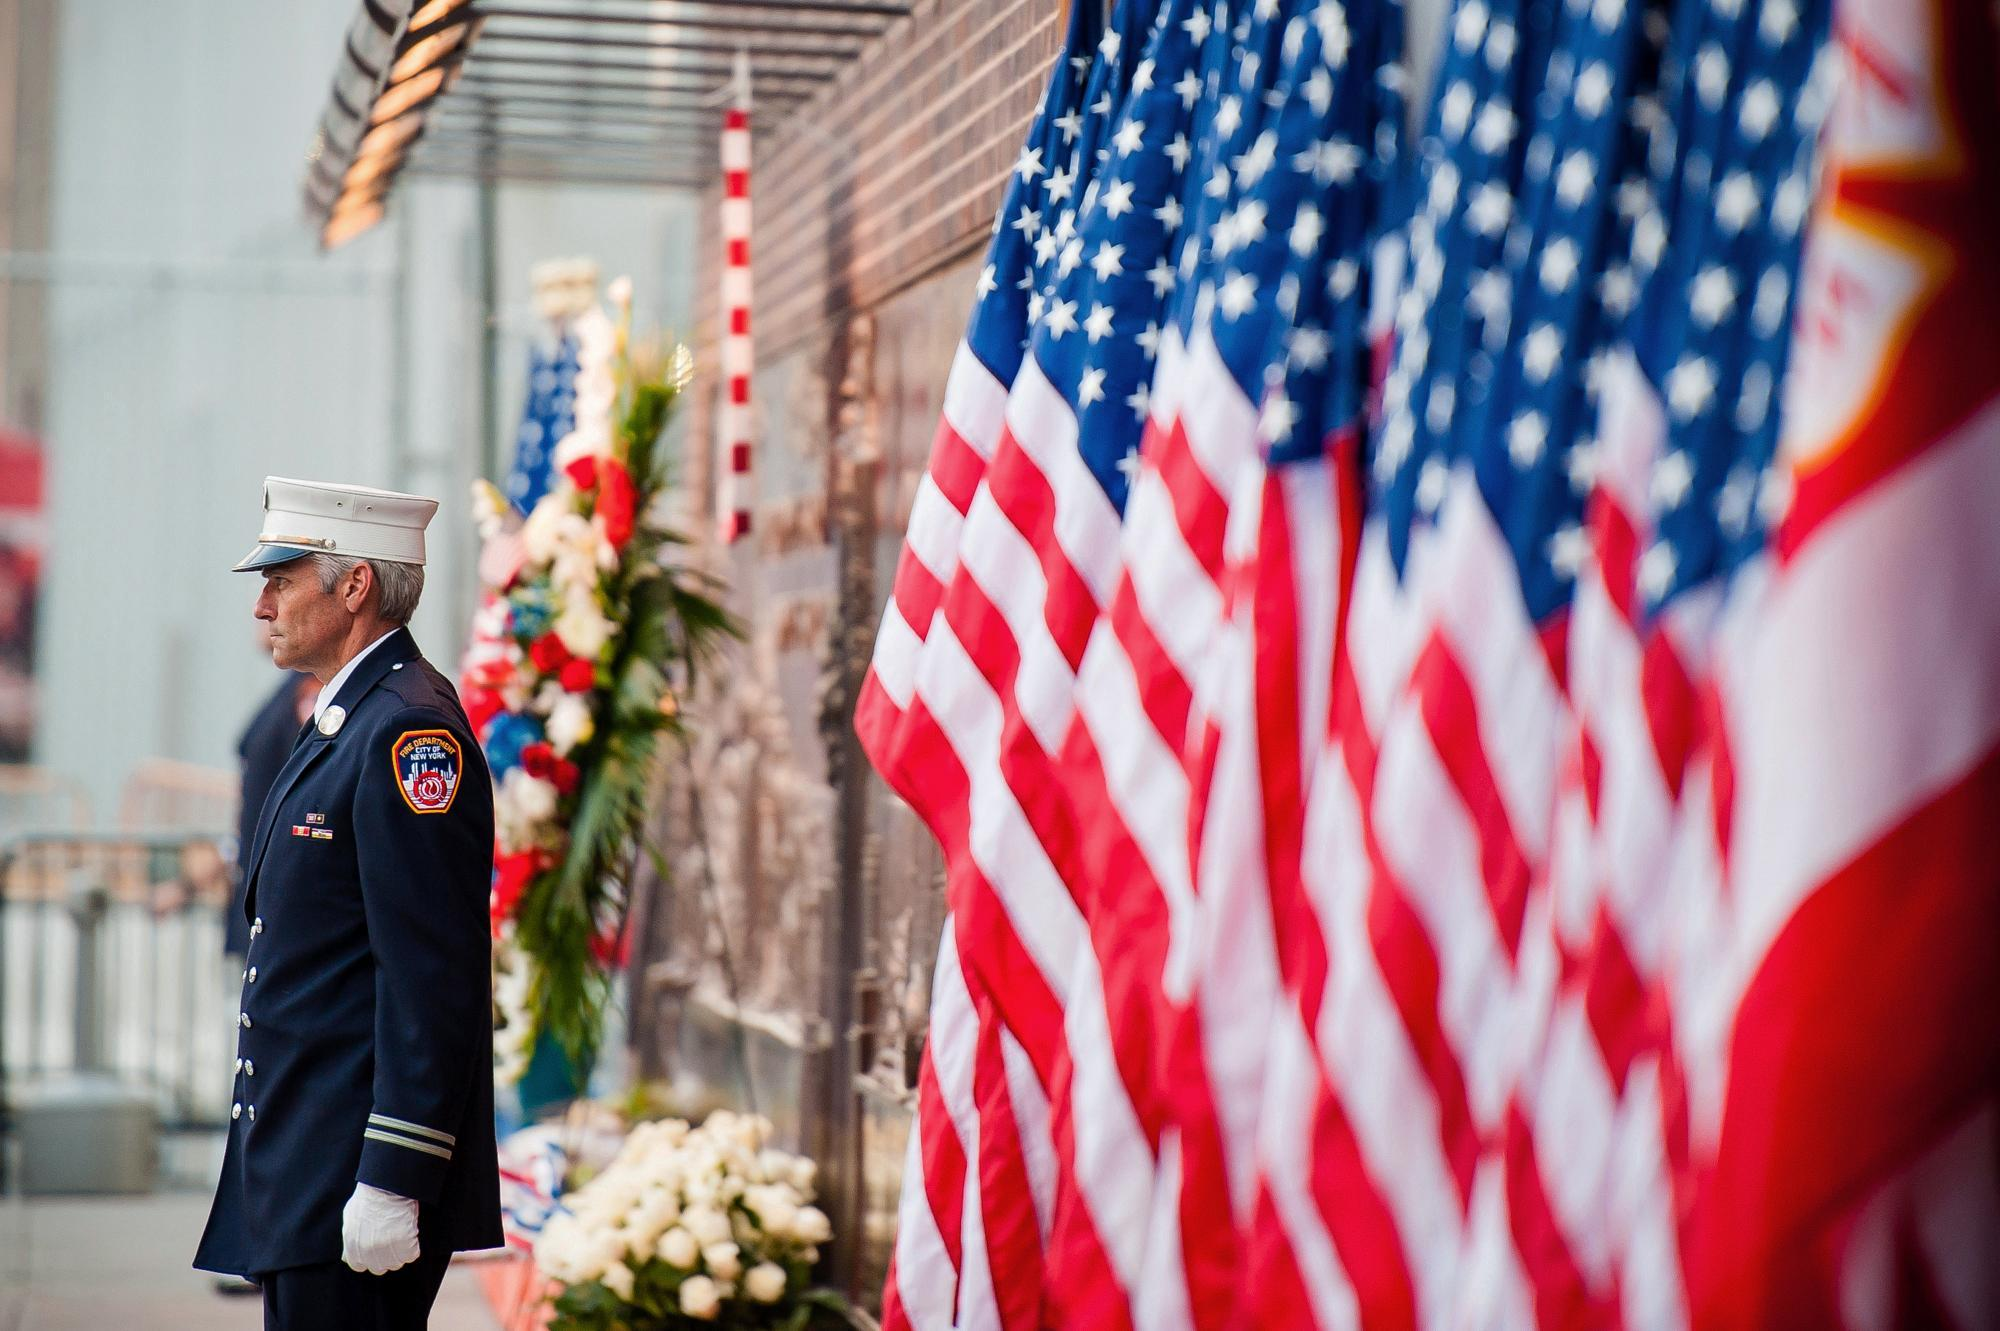 A firefighter stands near the entrance of the 9/11 Memorial in New York. Memorials were held across the U.S. for those killed in the 9/11 terrorist attacks